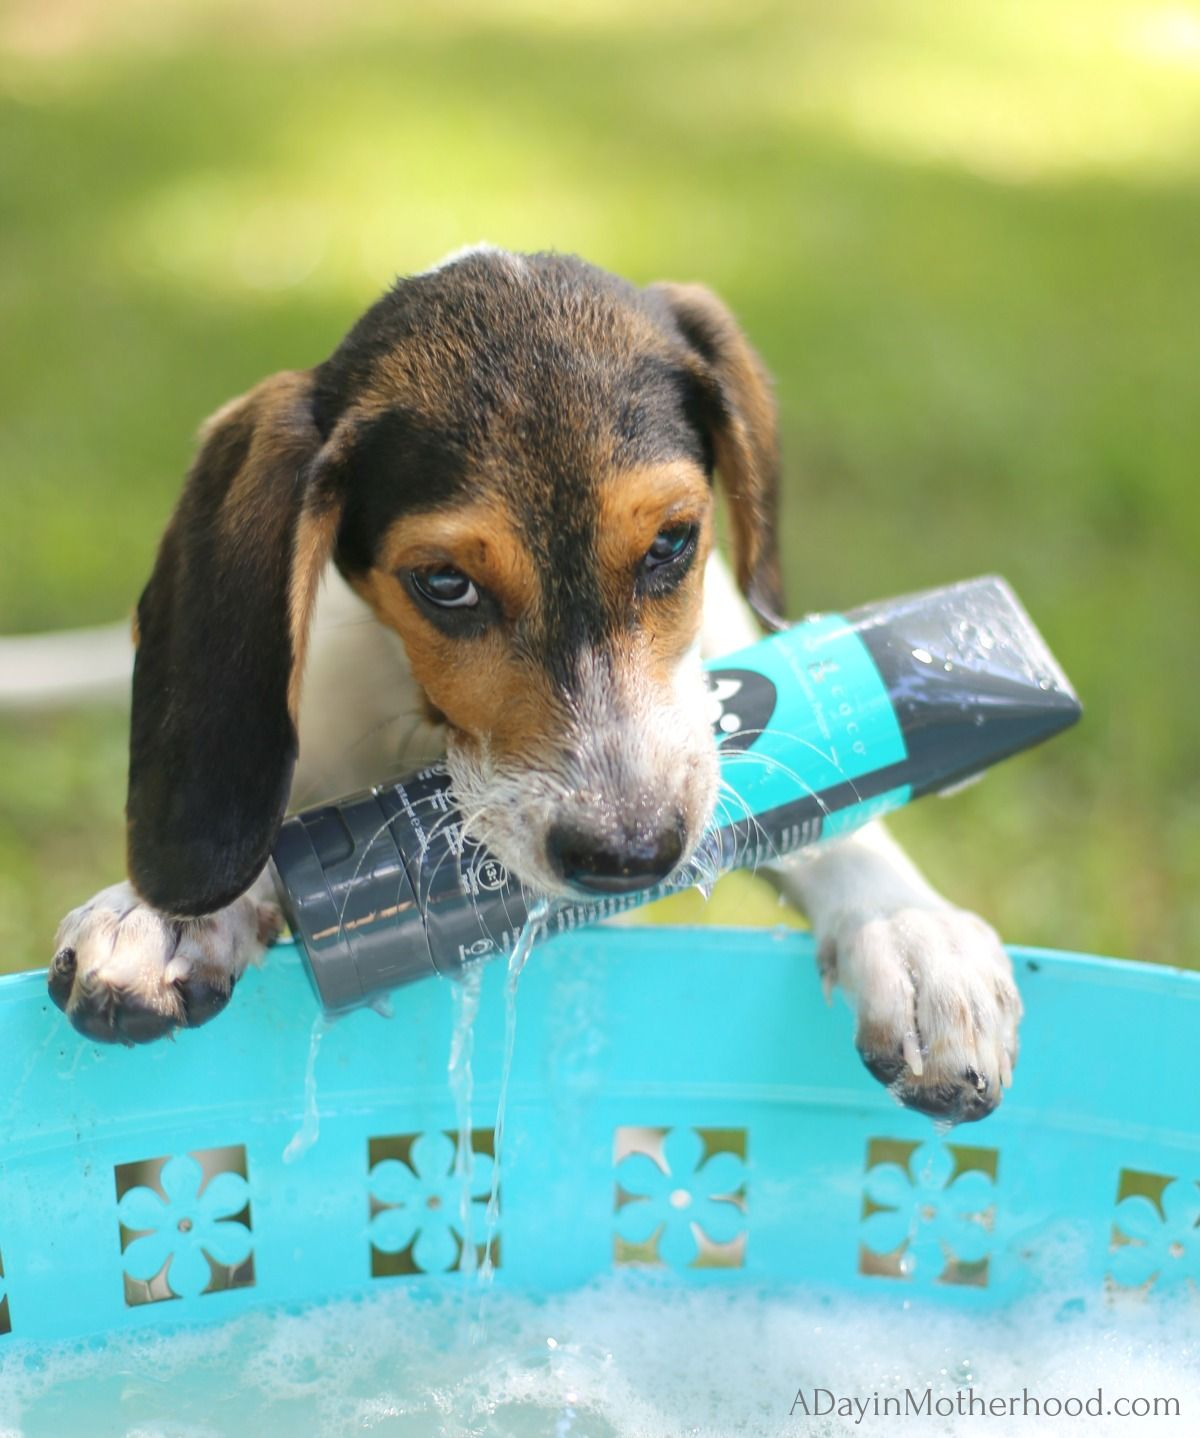 How Often Should I Bathe My Puppy Bathing A Puppy Puppy Find